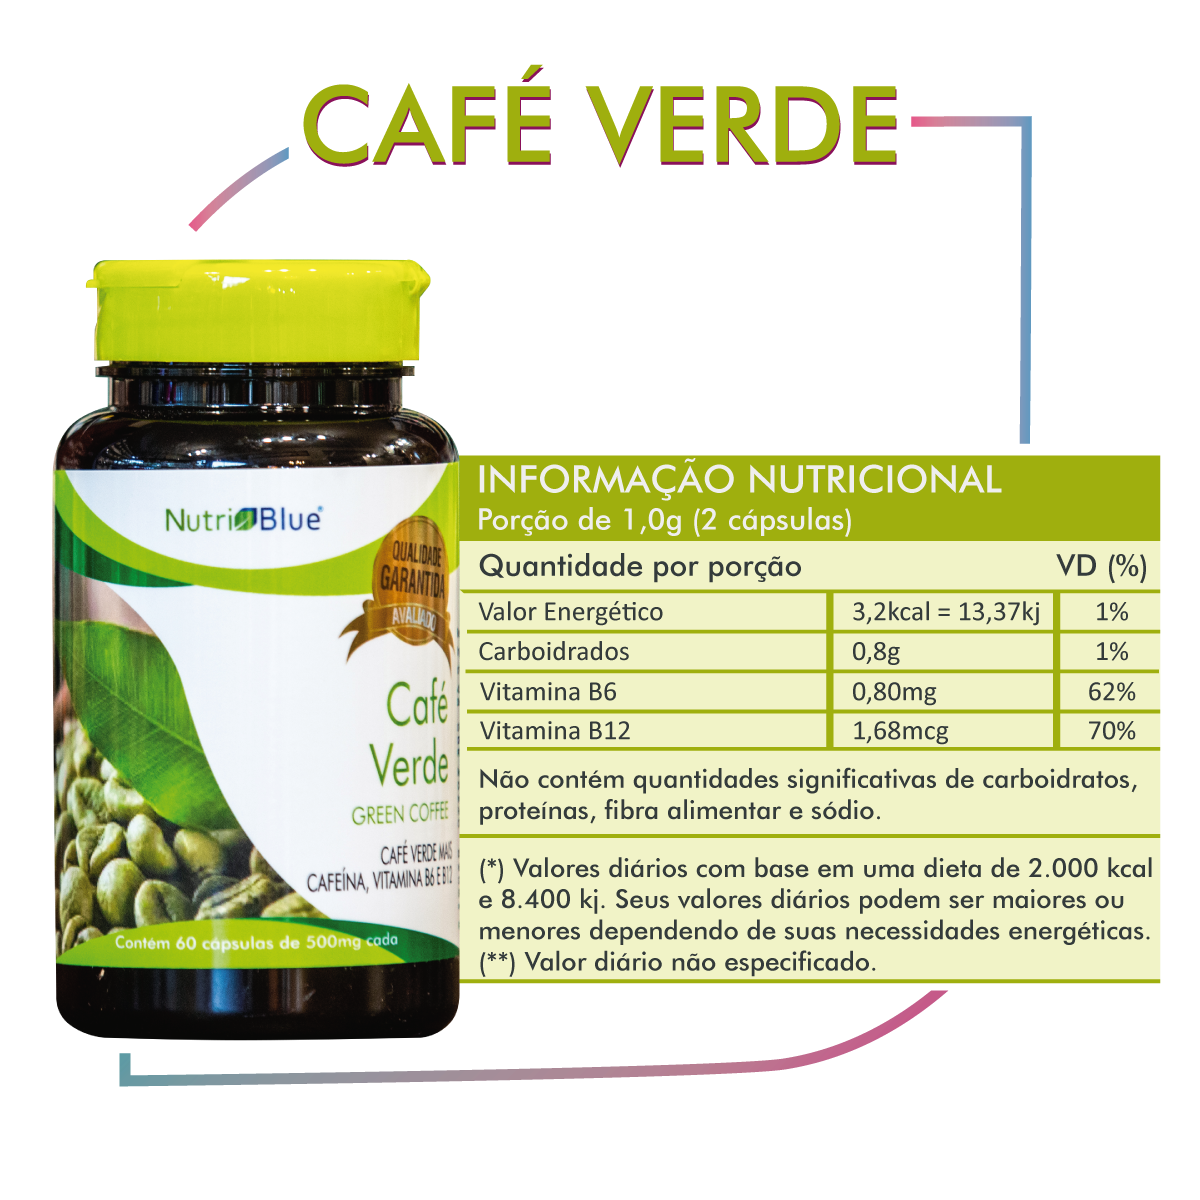 cafe-verde-green-coffee-em-capsulas-nutriblue-nutricional